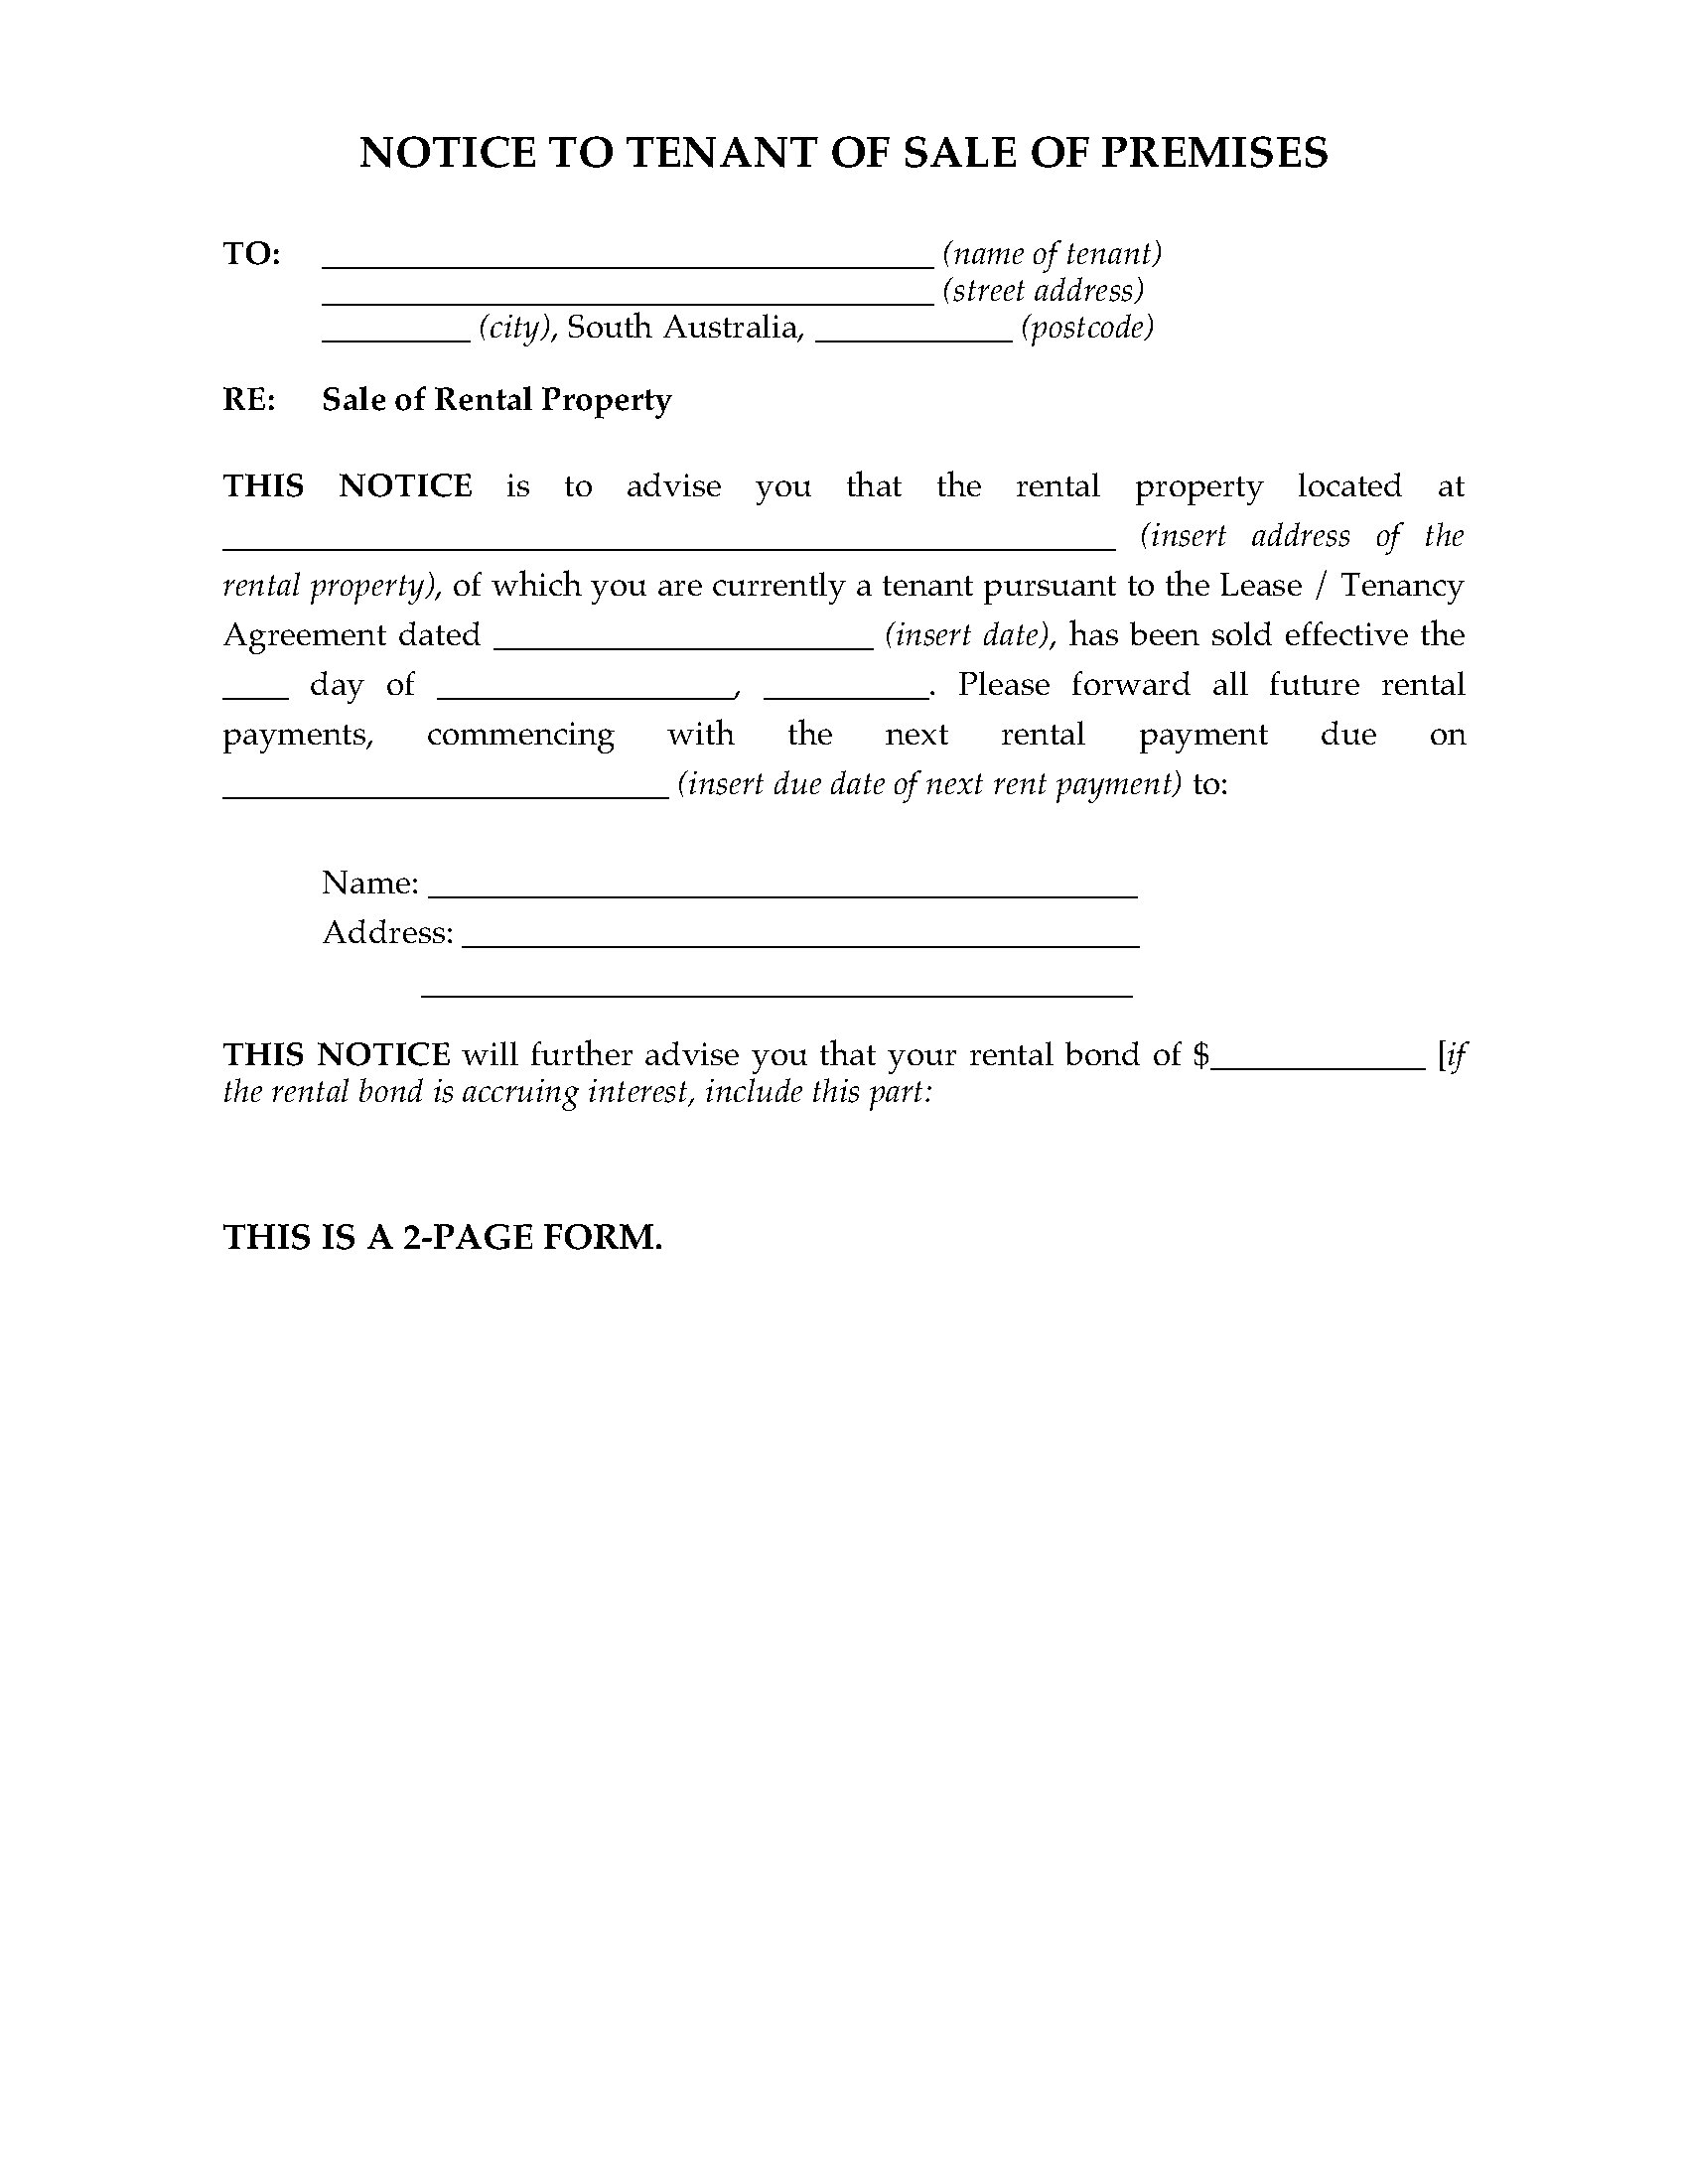 South Australia Notice Of Sale Of Rental Premises Legal Forms And